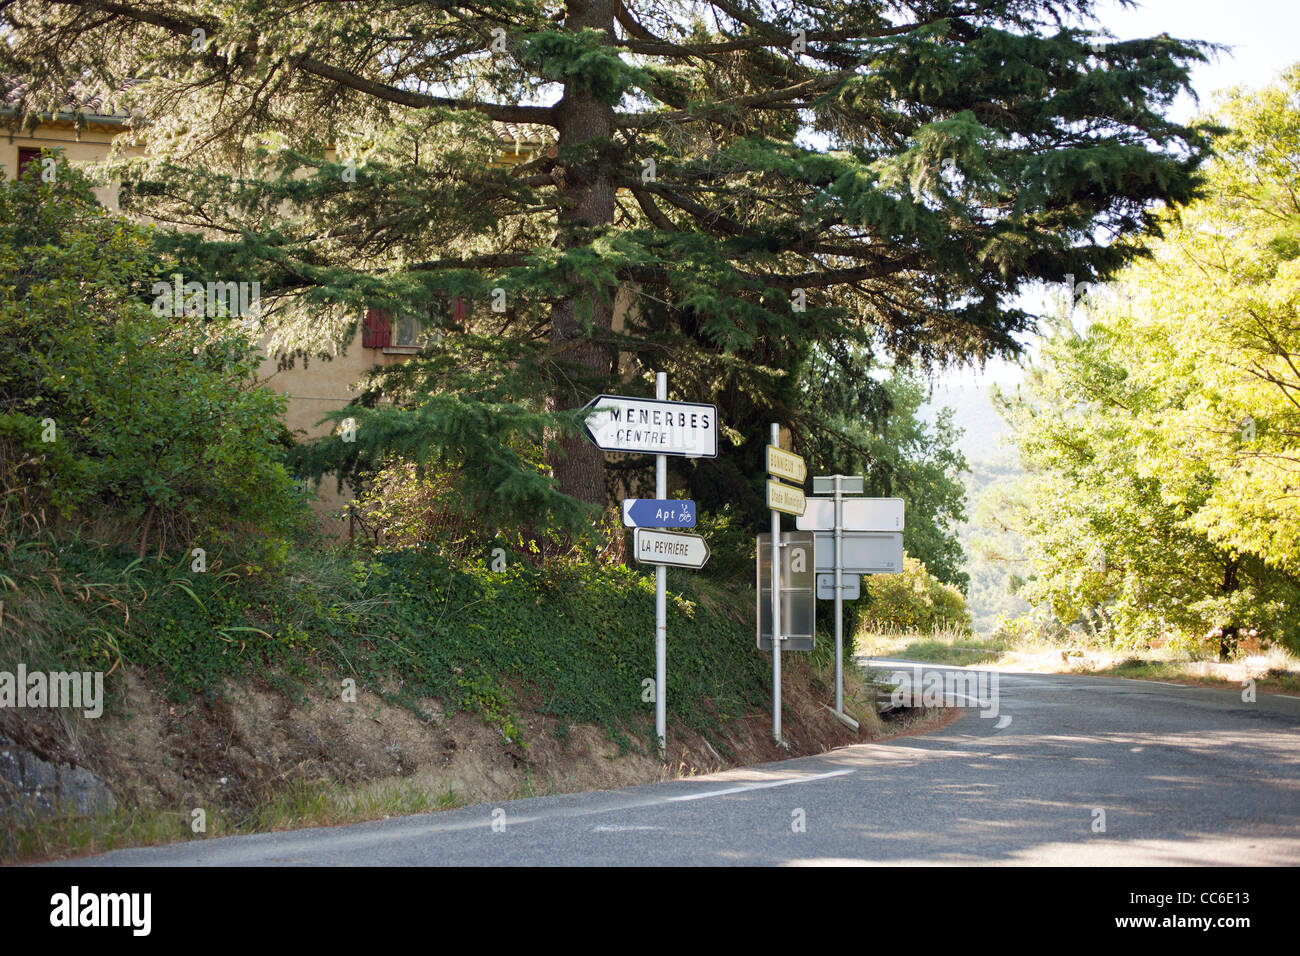 A road sign points the way to Menerbes, France - Stock Image